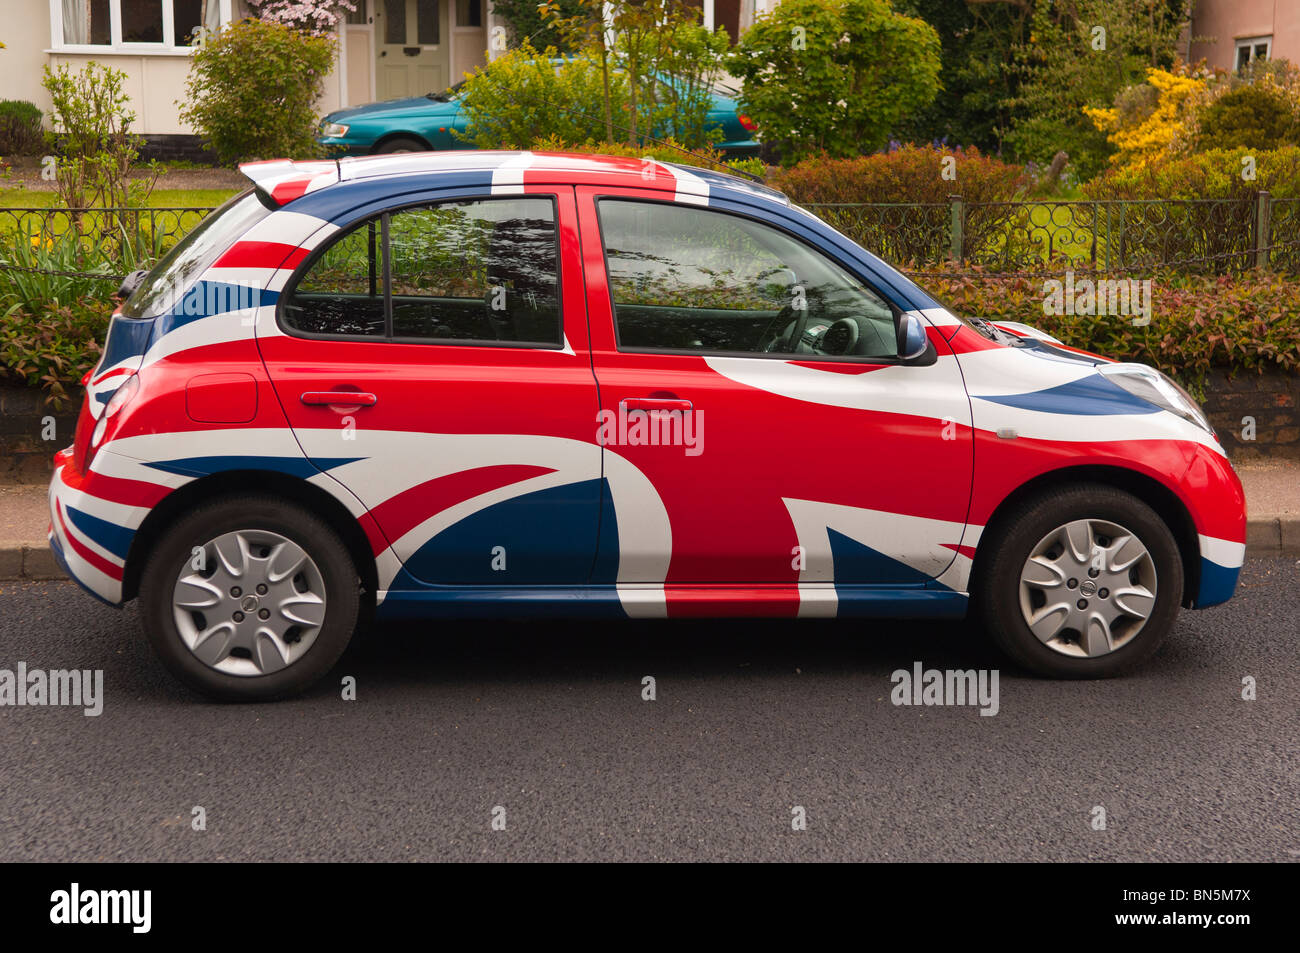 A Nissan Micra in Union Jack livery in the Uk - Stock Image